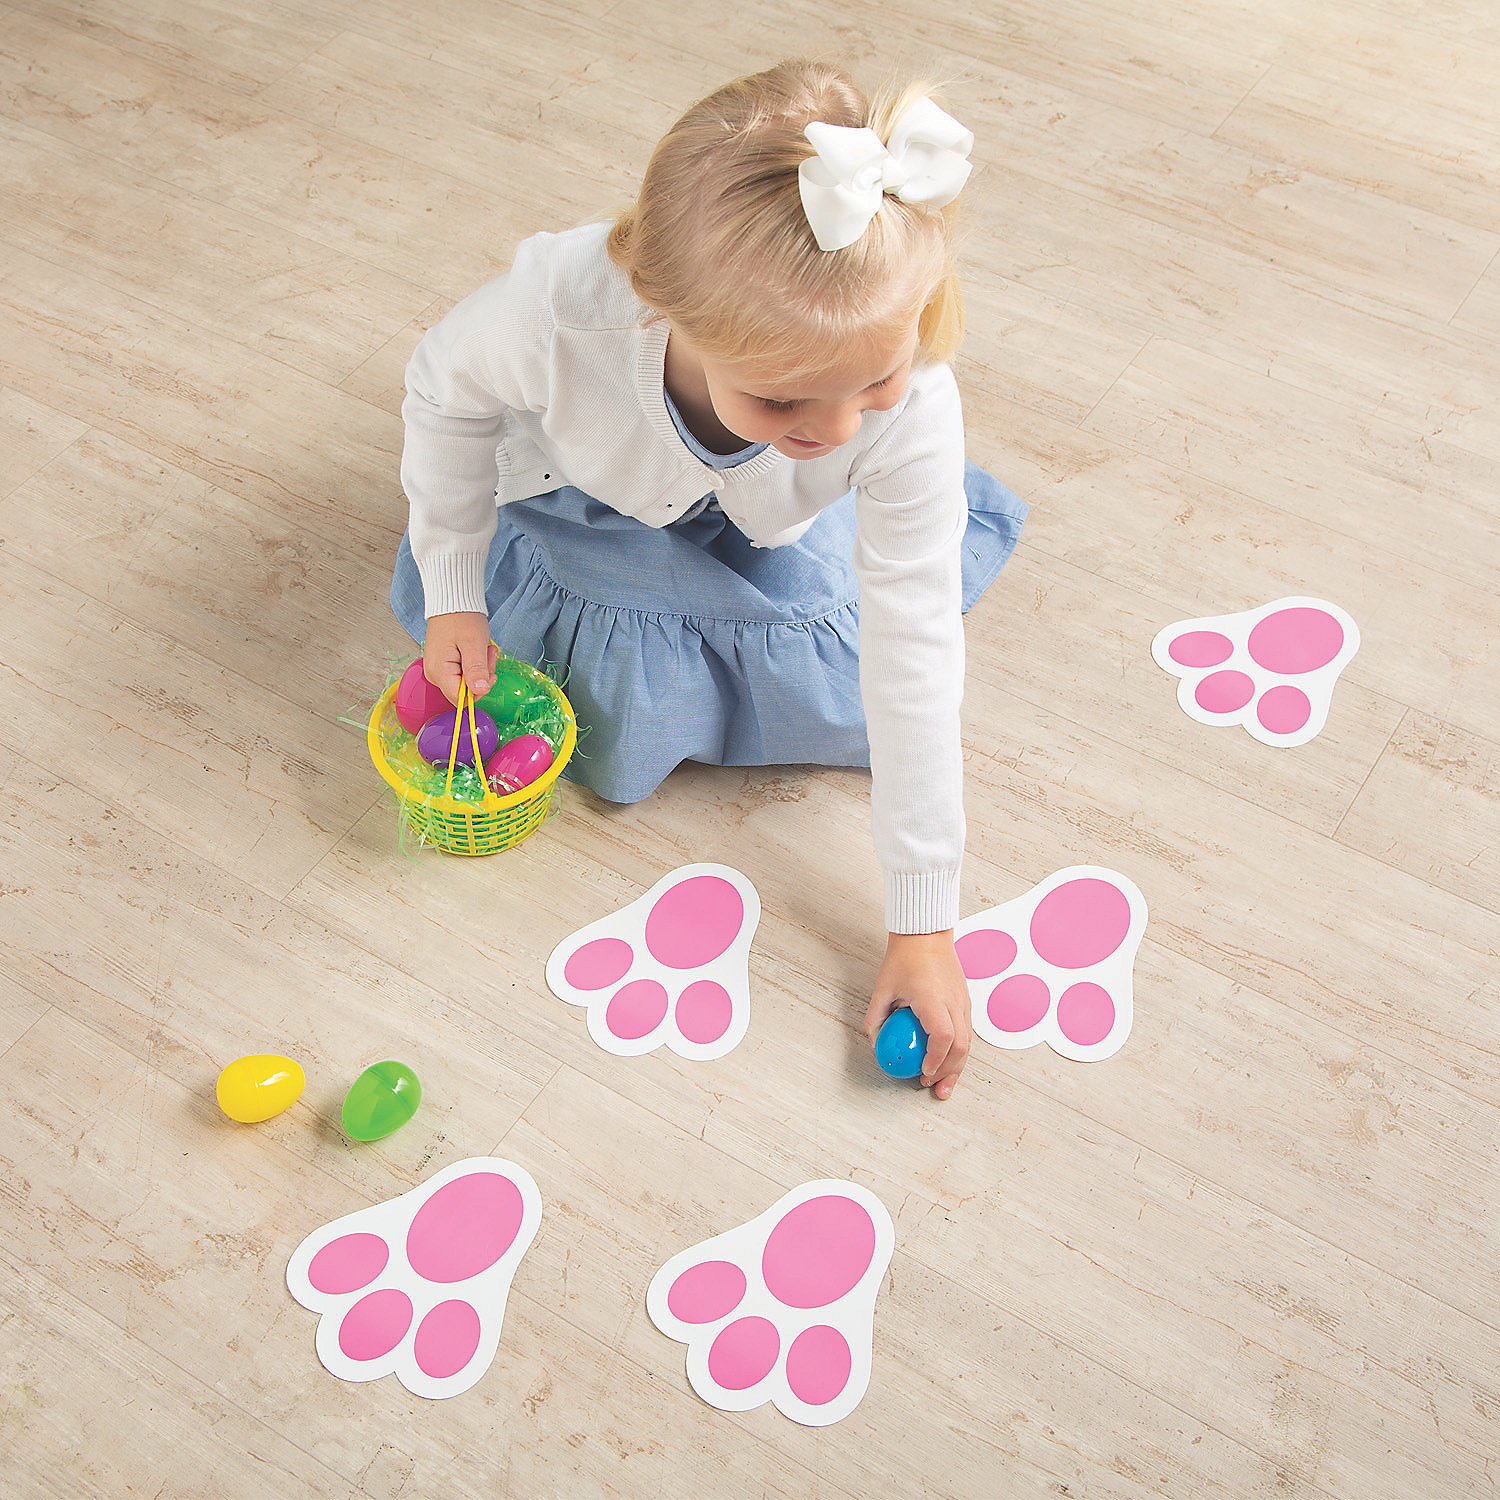 footprint cut out template - bunny print floor clings oriental trading